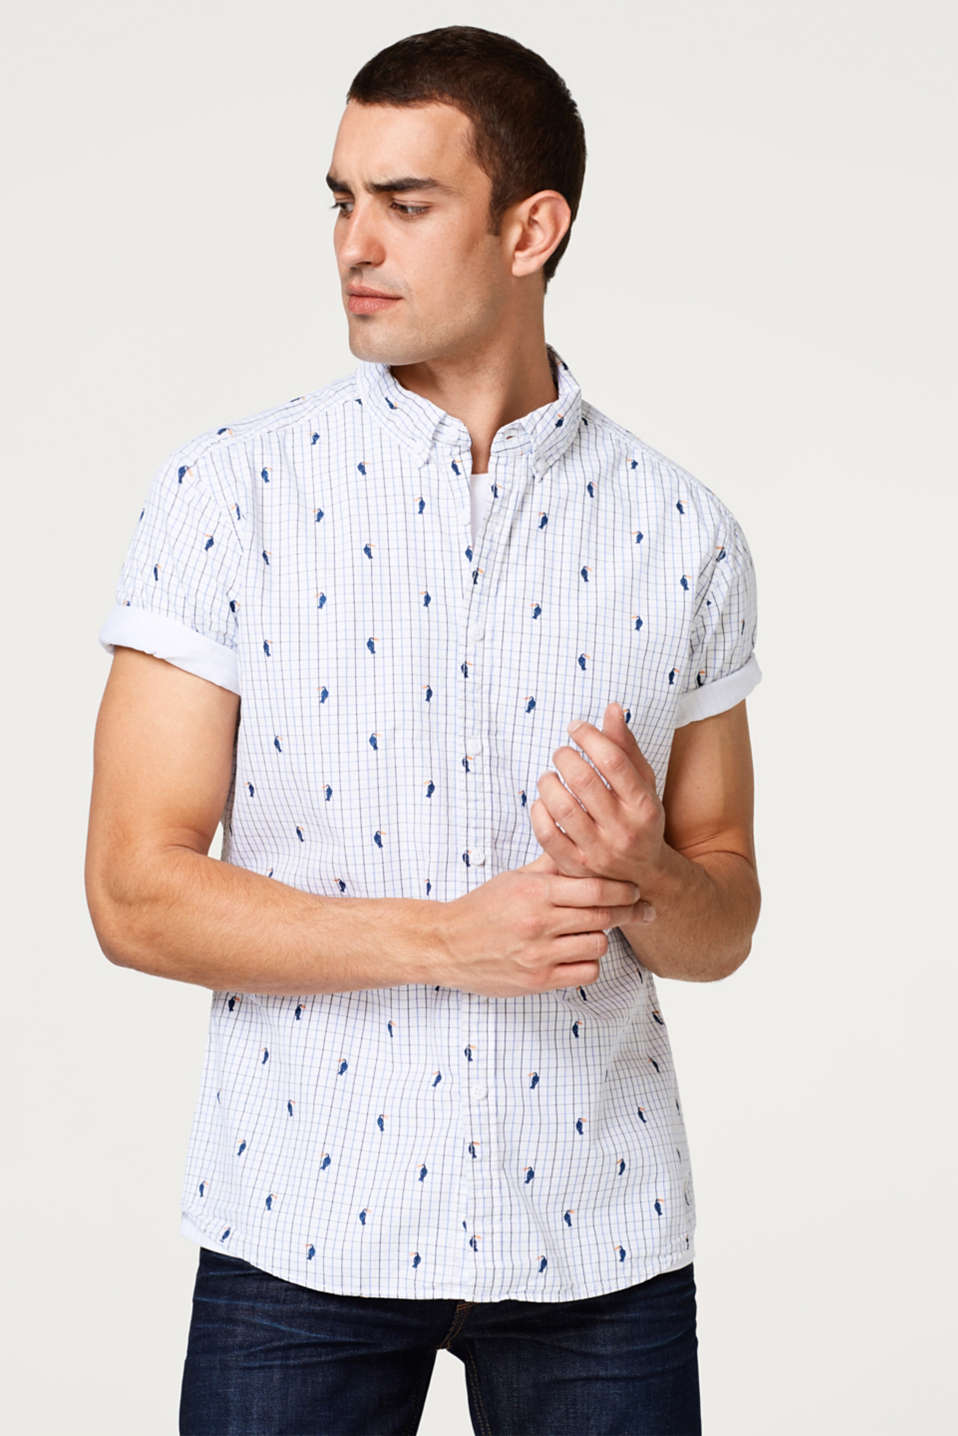 edc - Short sleeve shirt with a toucan print, in cotton